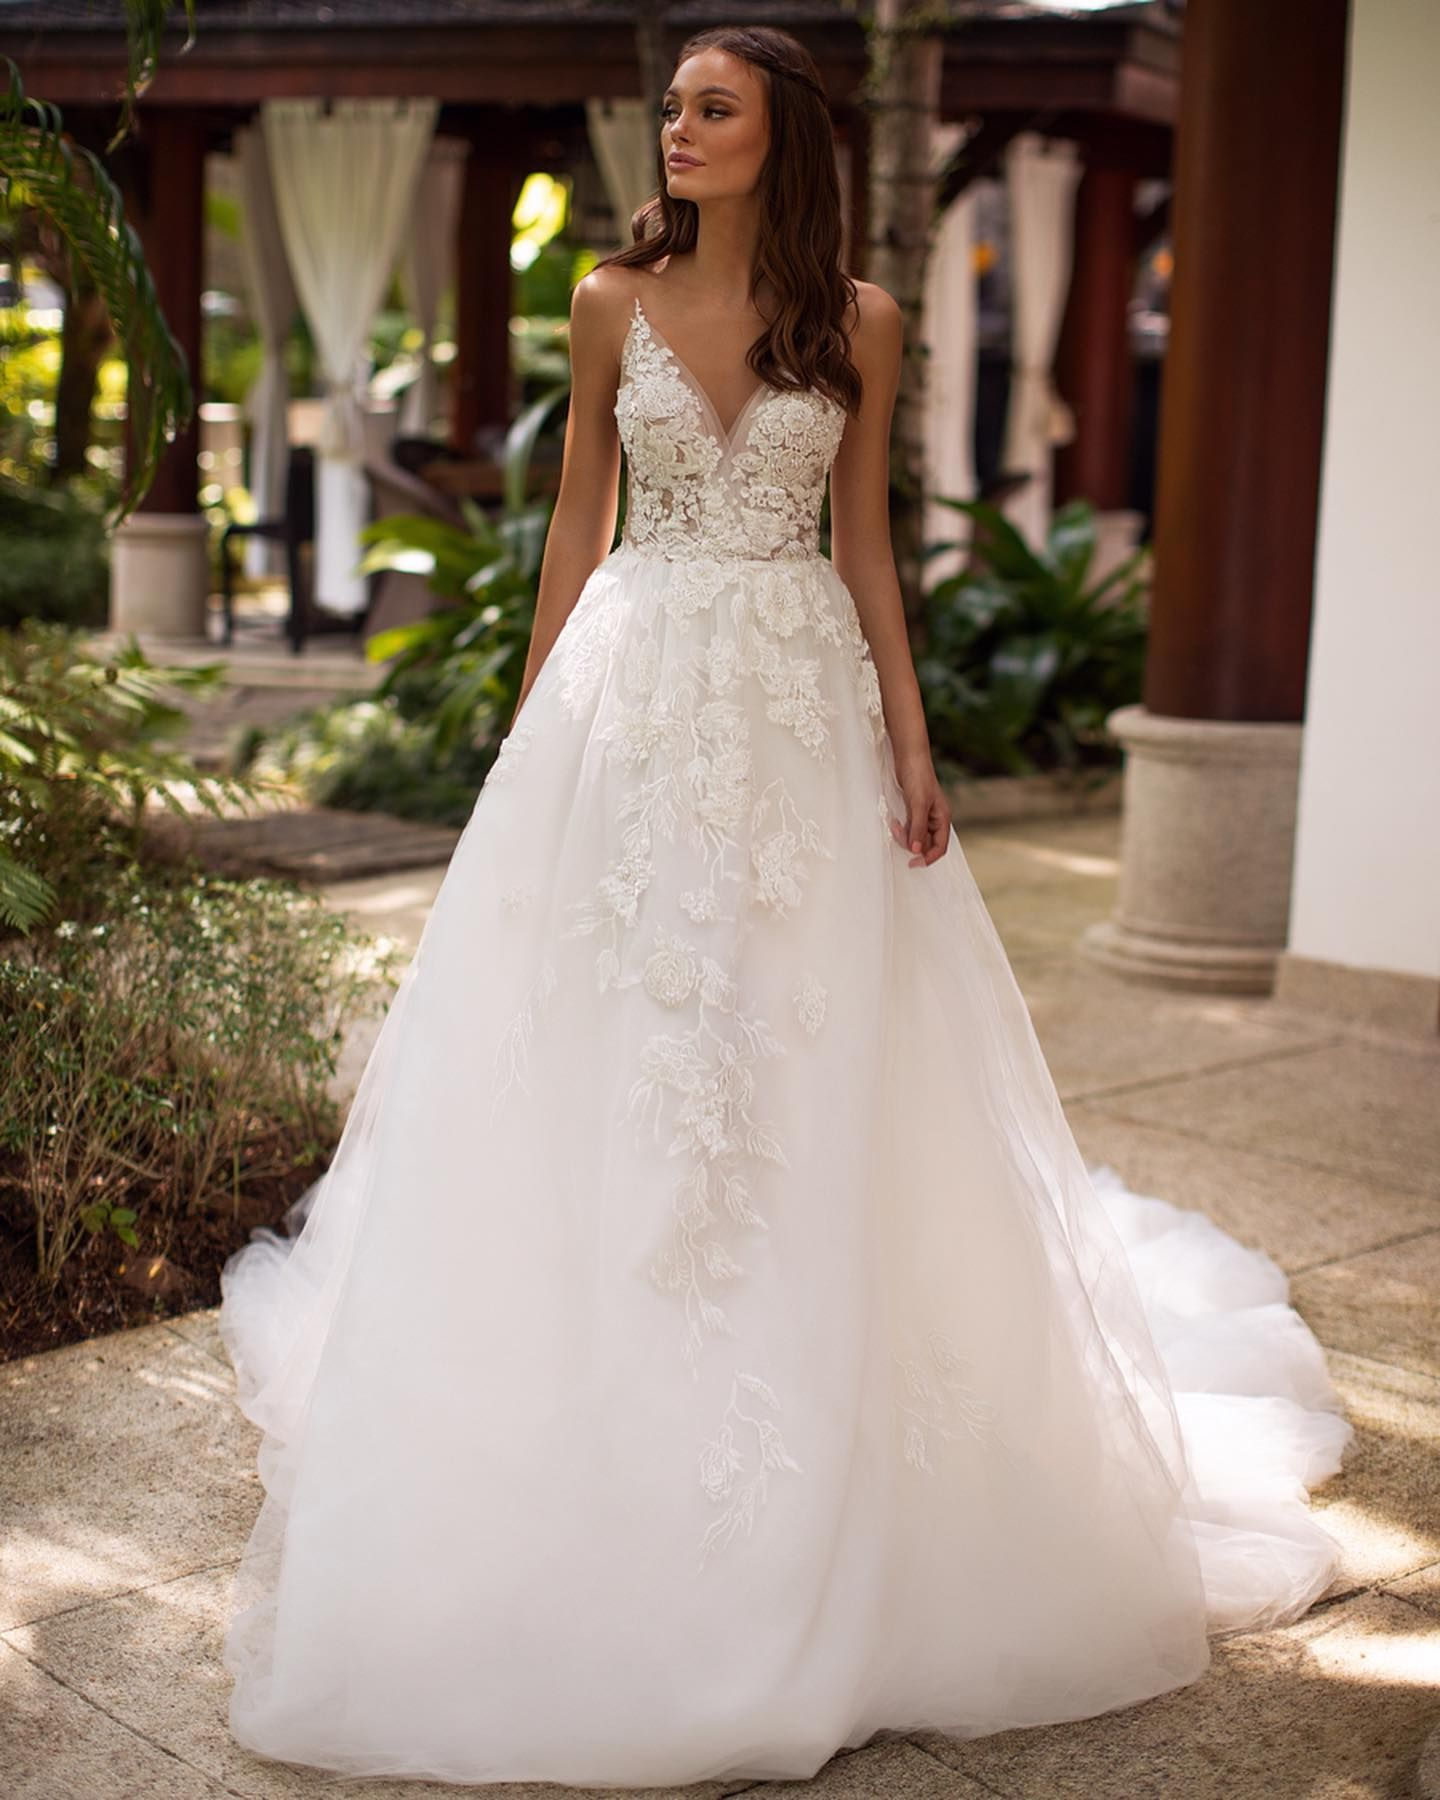 Simplicity And Charm Create Your Perfect Wedding Dress Millabylorenzorossi Lorenzor In 2020 Lace Applique Wedding Dress Milla Nova Wedding Dresses Wedding Dresses